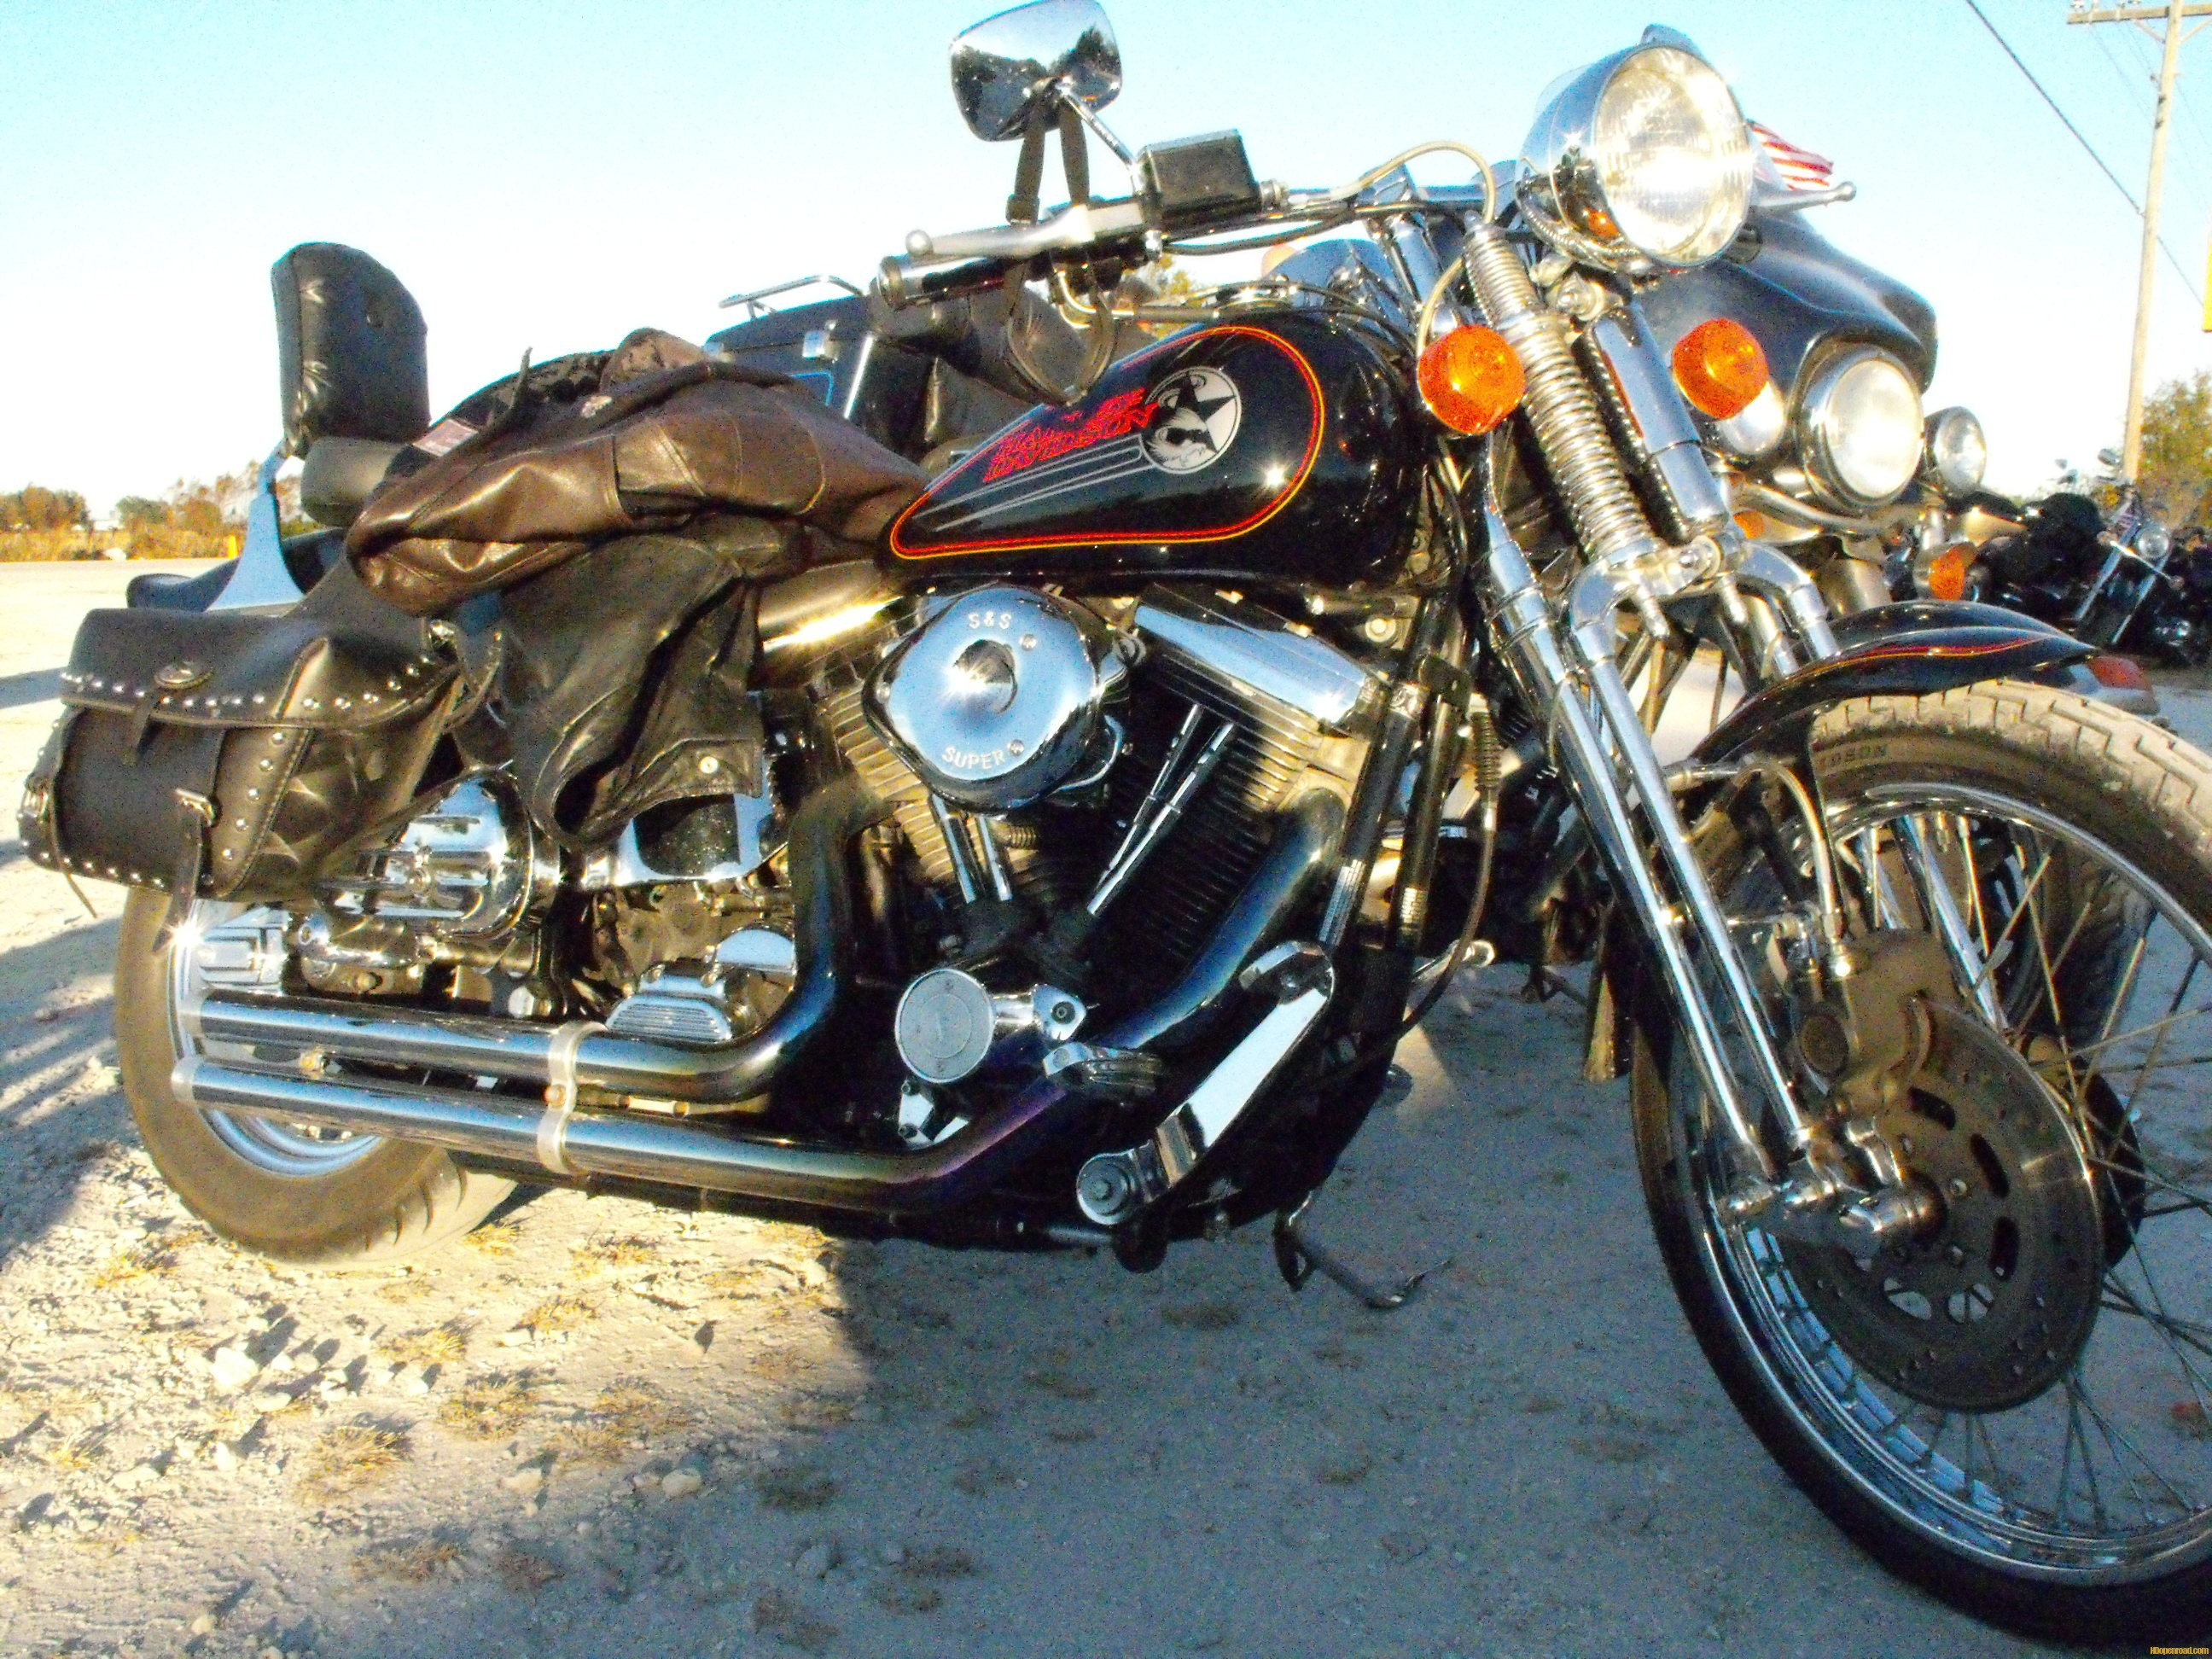 Harley Evo vs Twin Cams: The Sweet Years - Todds Harley Pix